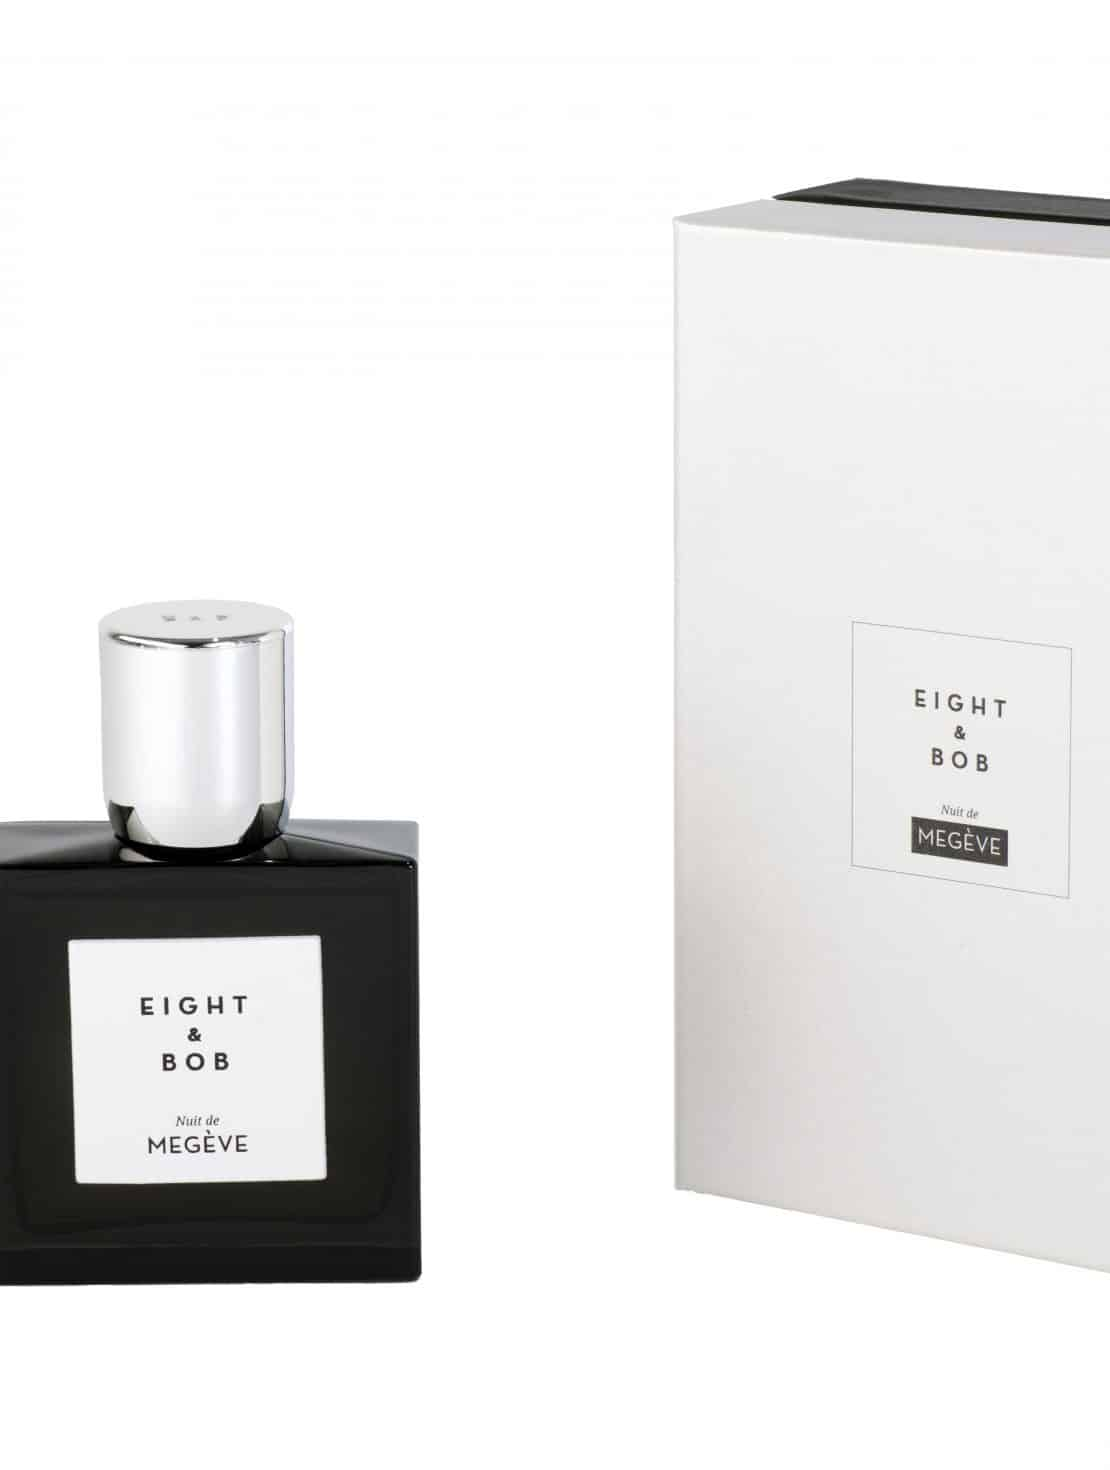 EIGHT & BOB-Nuit de Megeve EdP